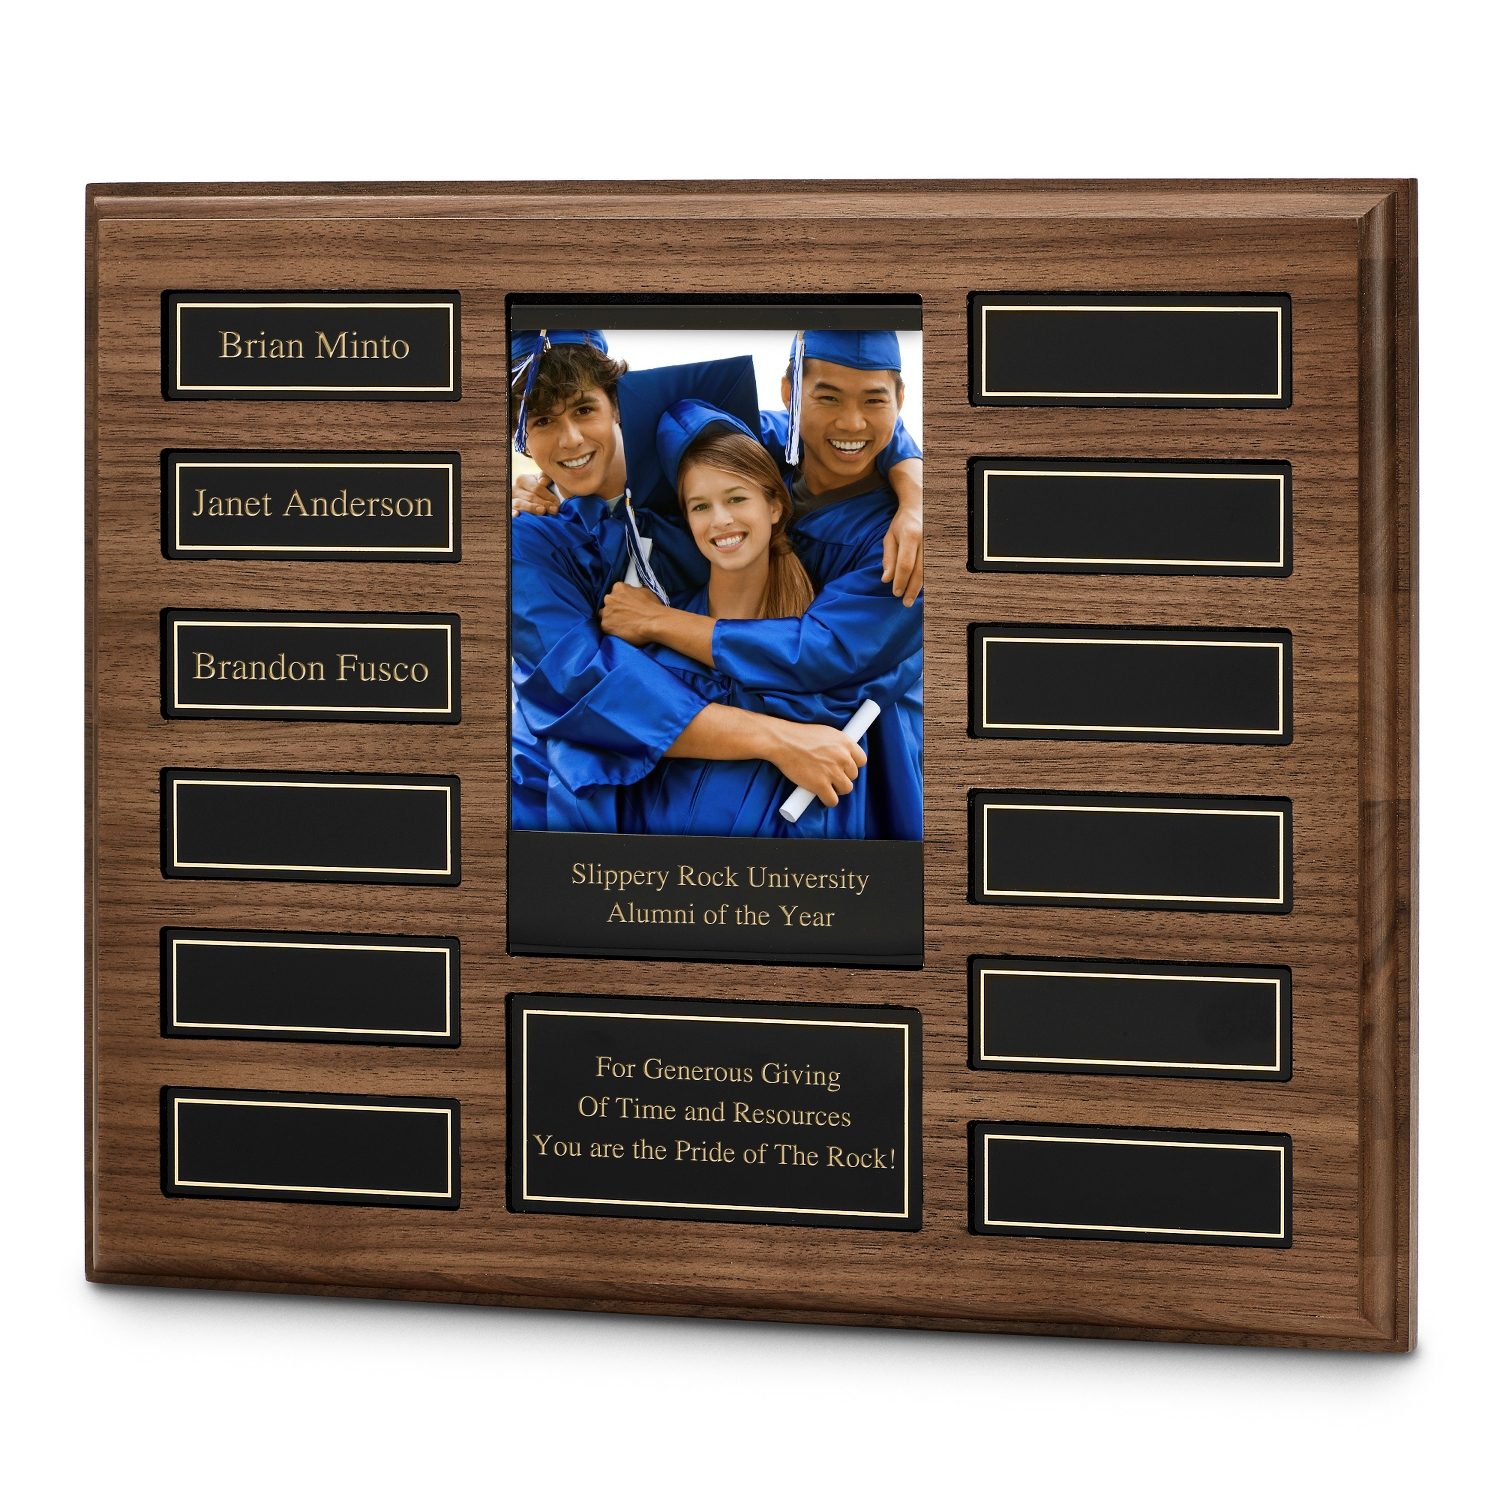 Personalized Perpetual Plaque with Photo